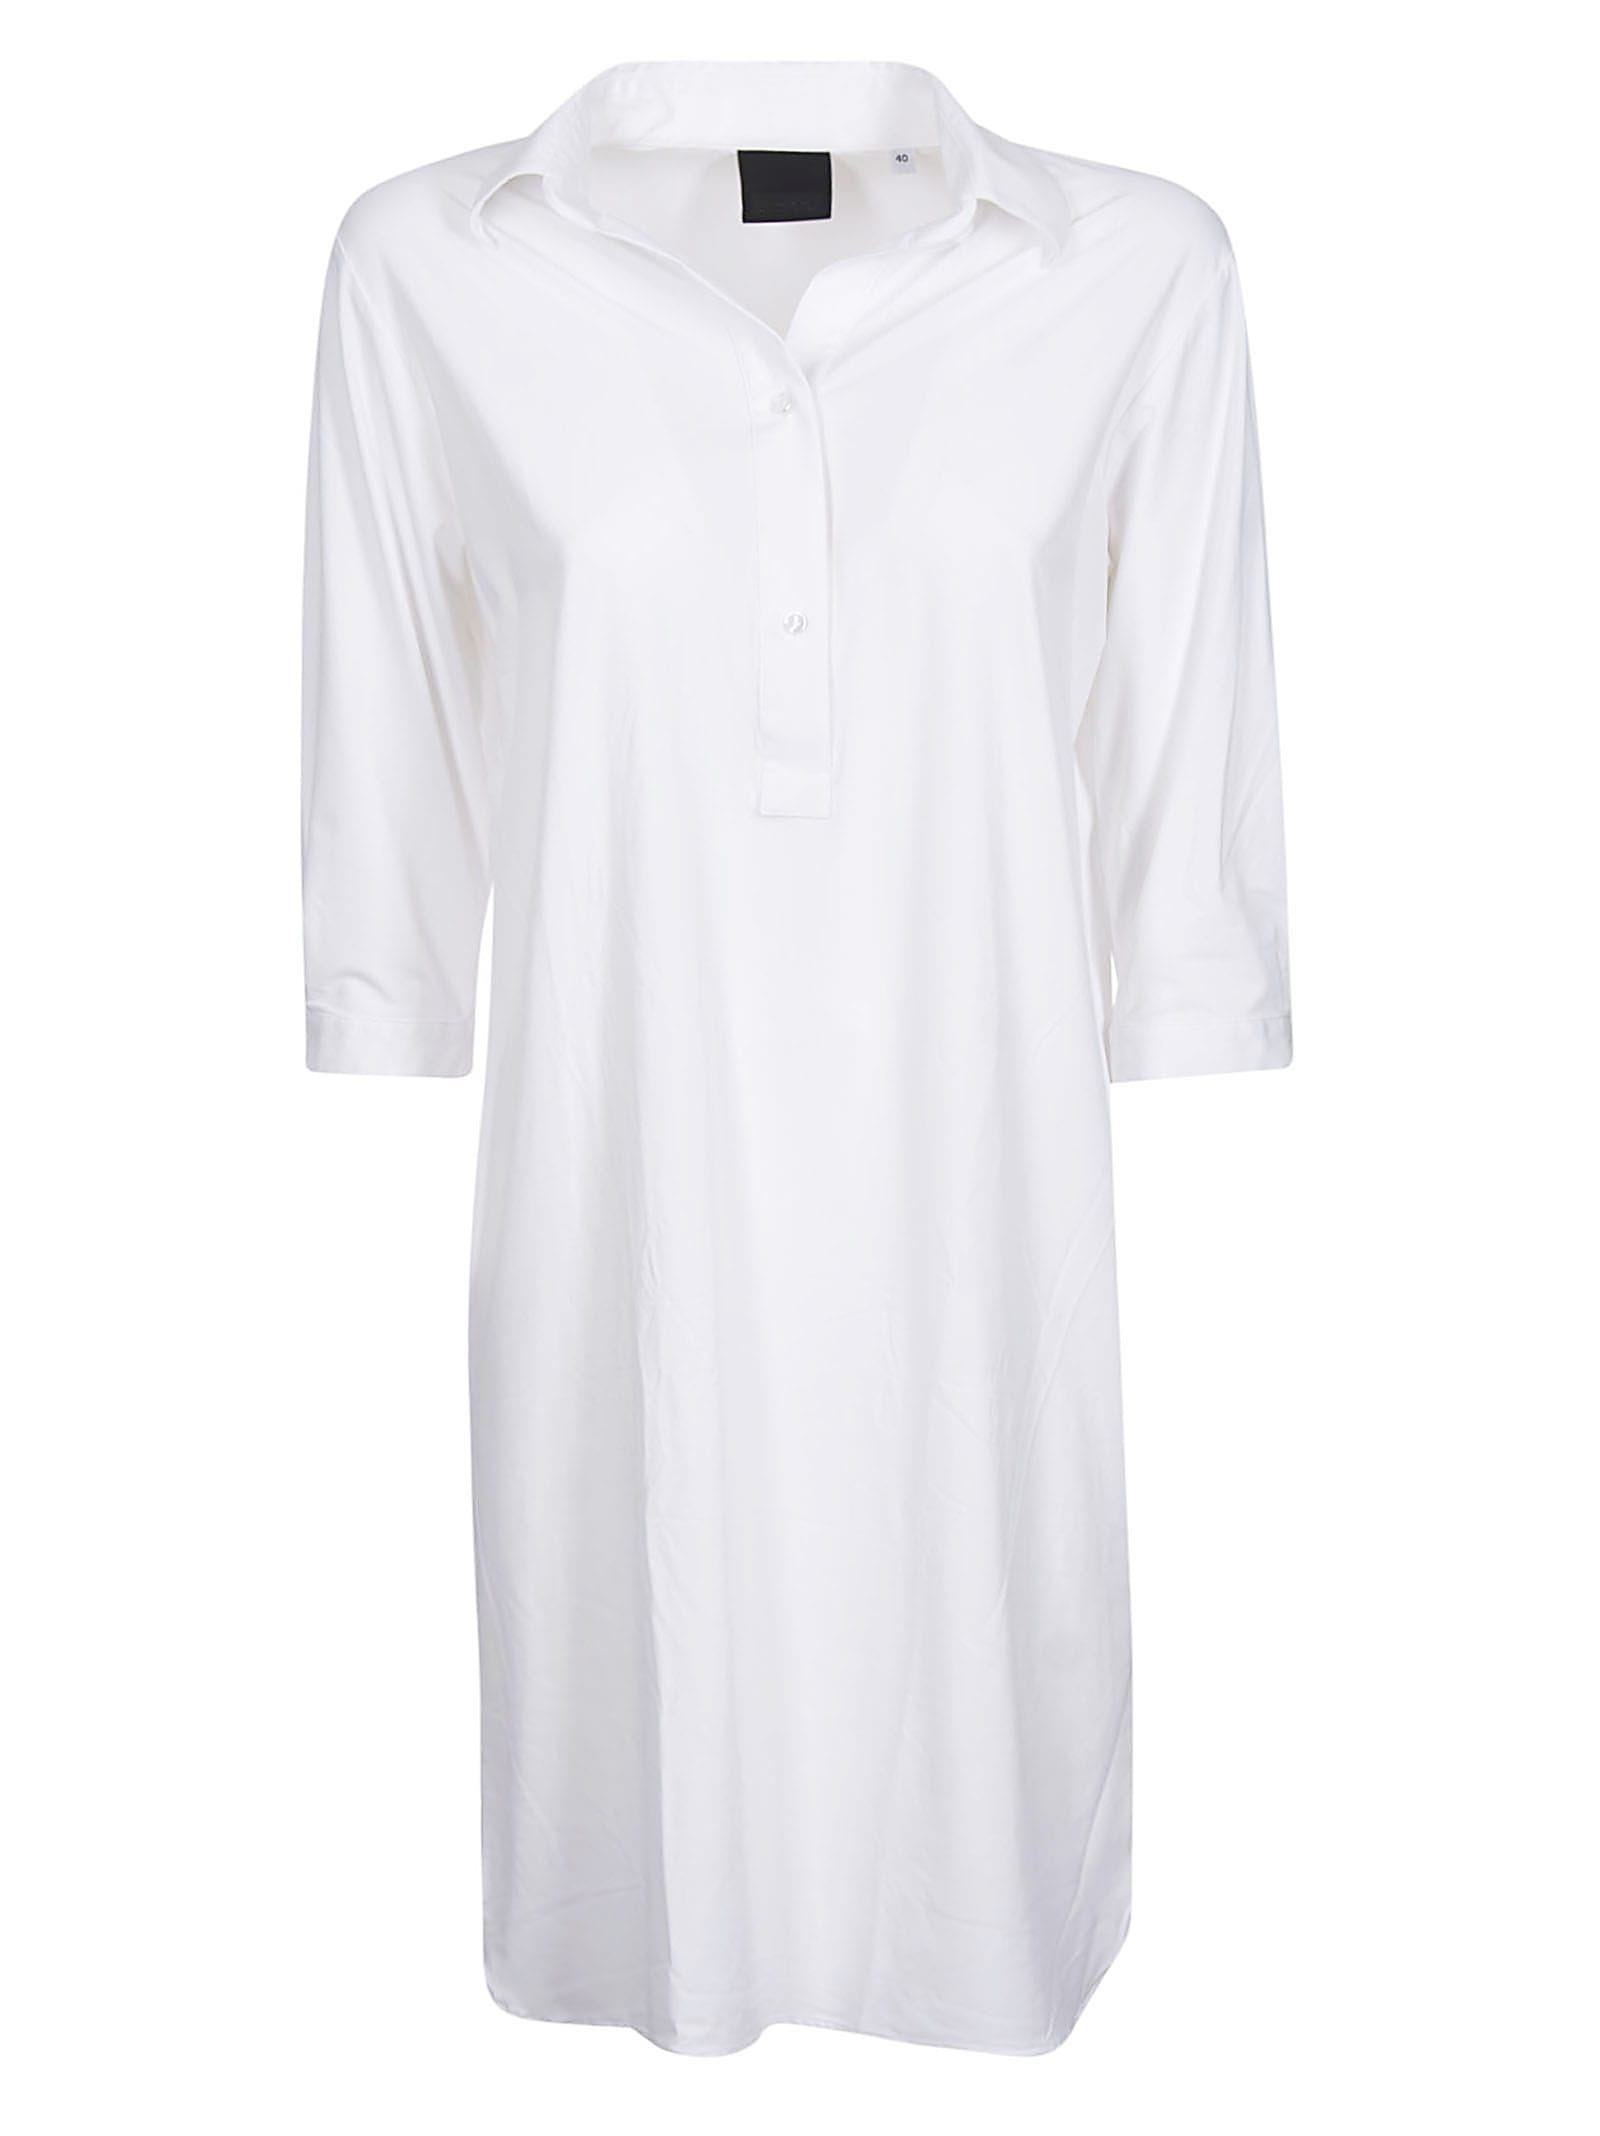 RRD – Roberto Ricci Design Classic Shirt Dress